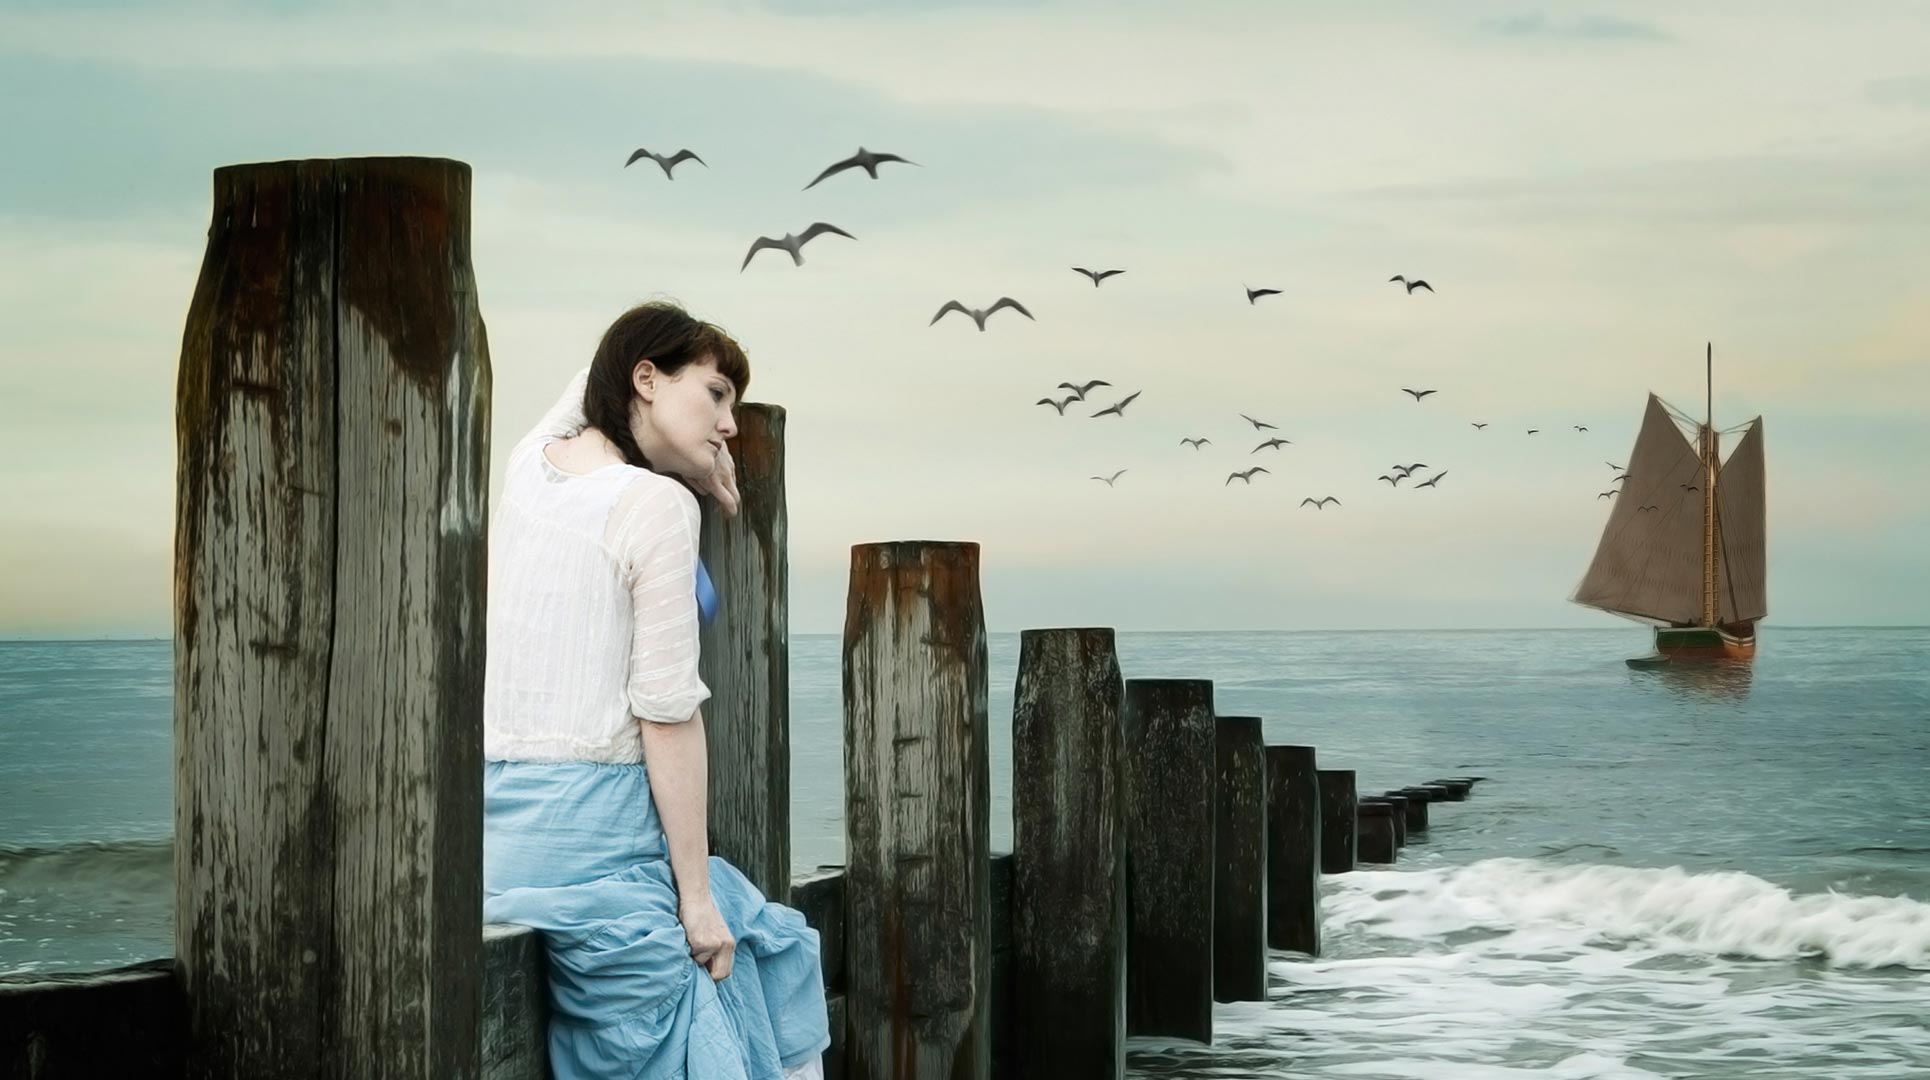 Nicola_Taylor_Art_Photography_The_Departure-1